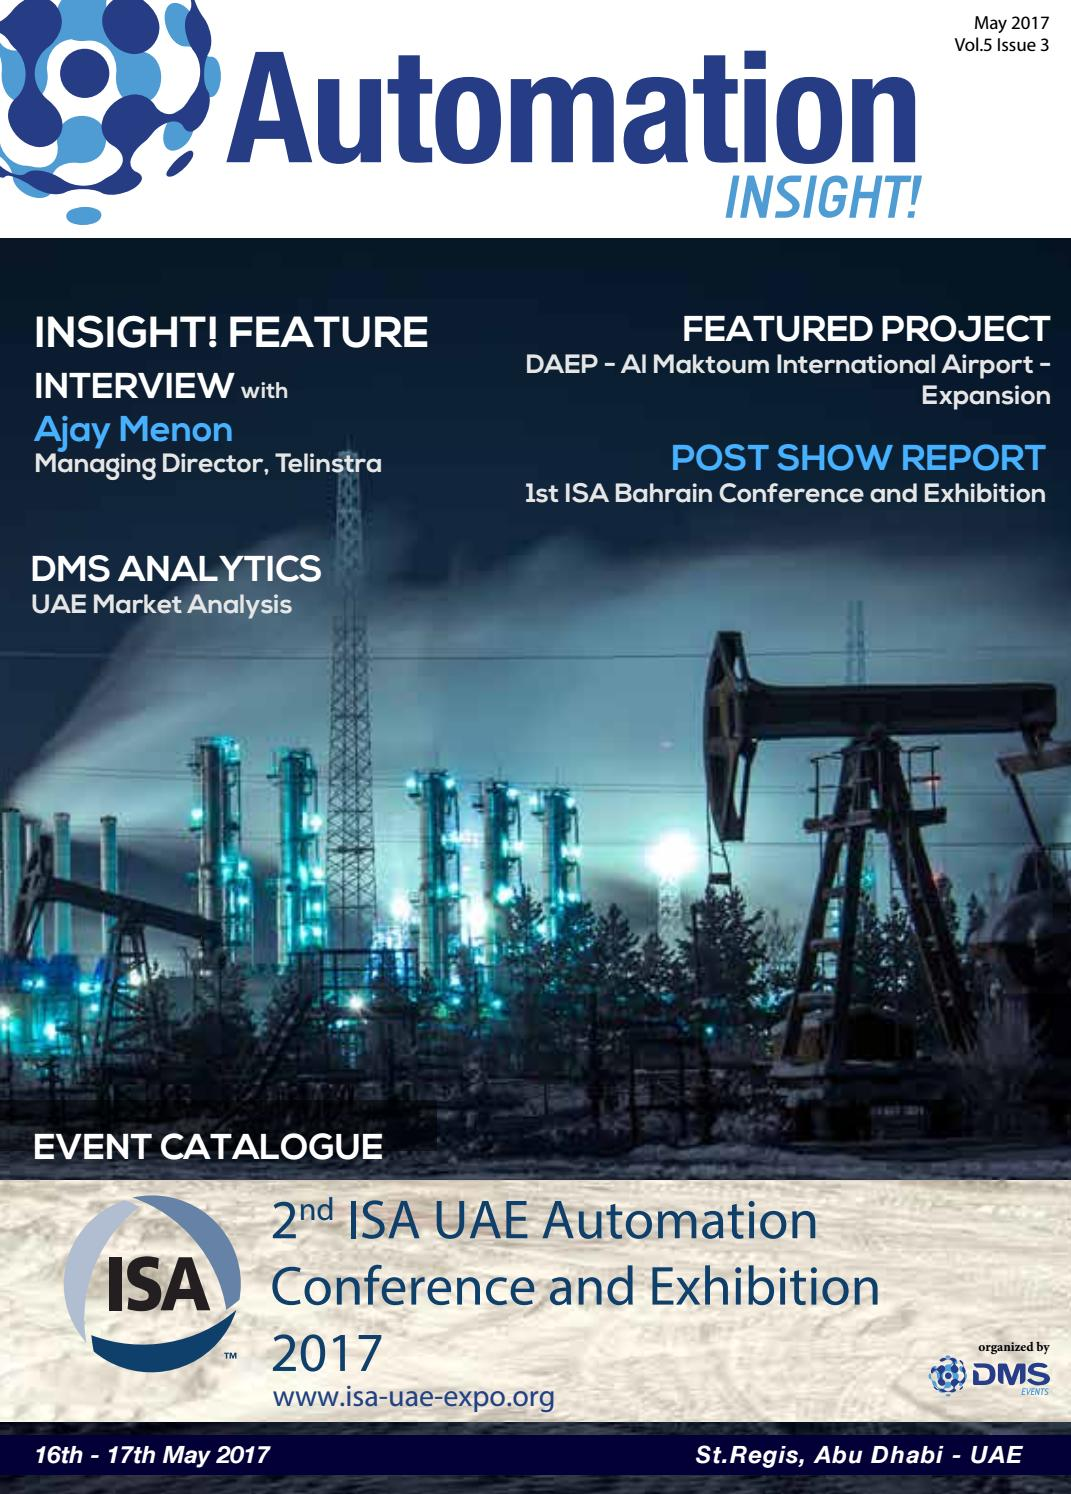 Automation Insight! May 2017 by DMS Global - issuu